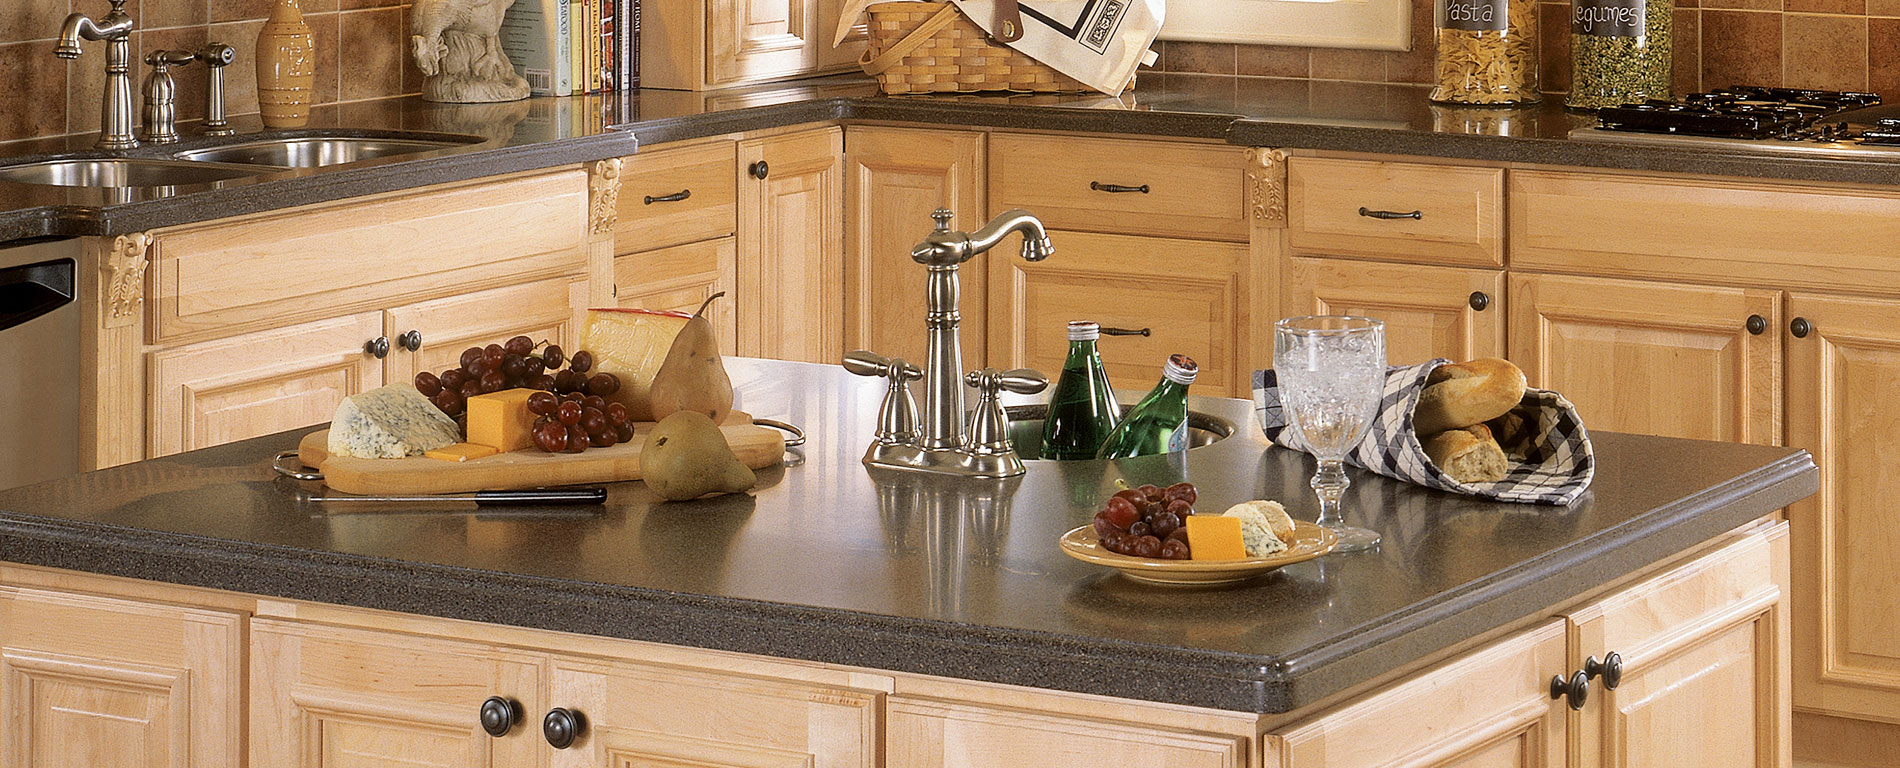 Beauty of a new countertop avoid poorly fabricated for Seamless quartz countertops